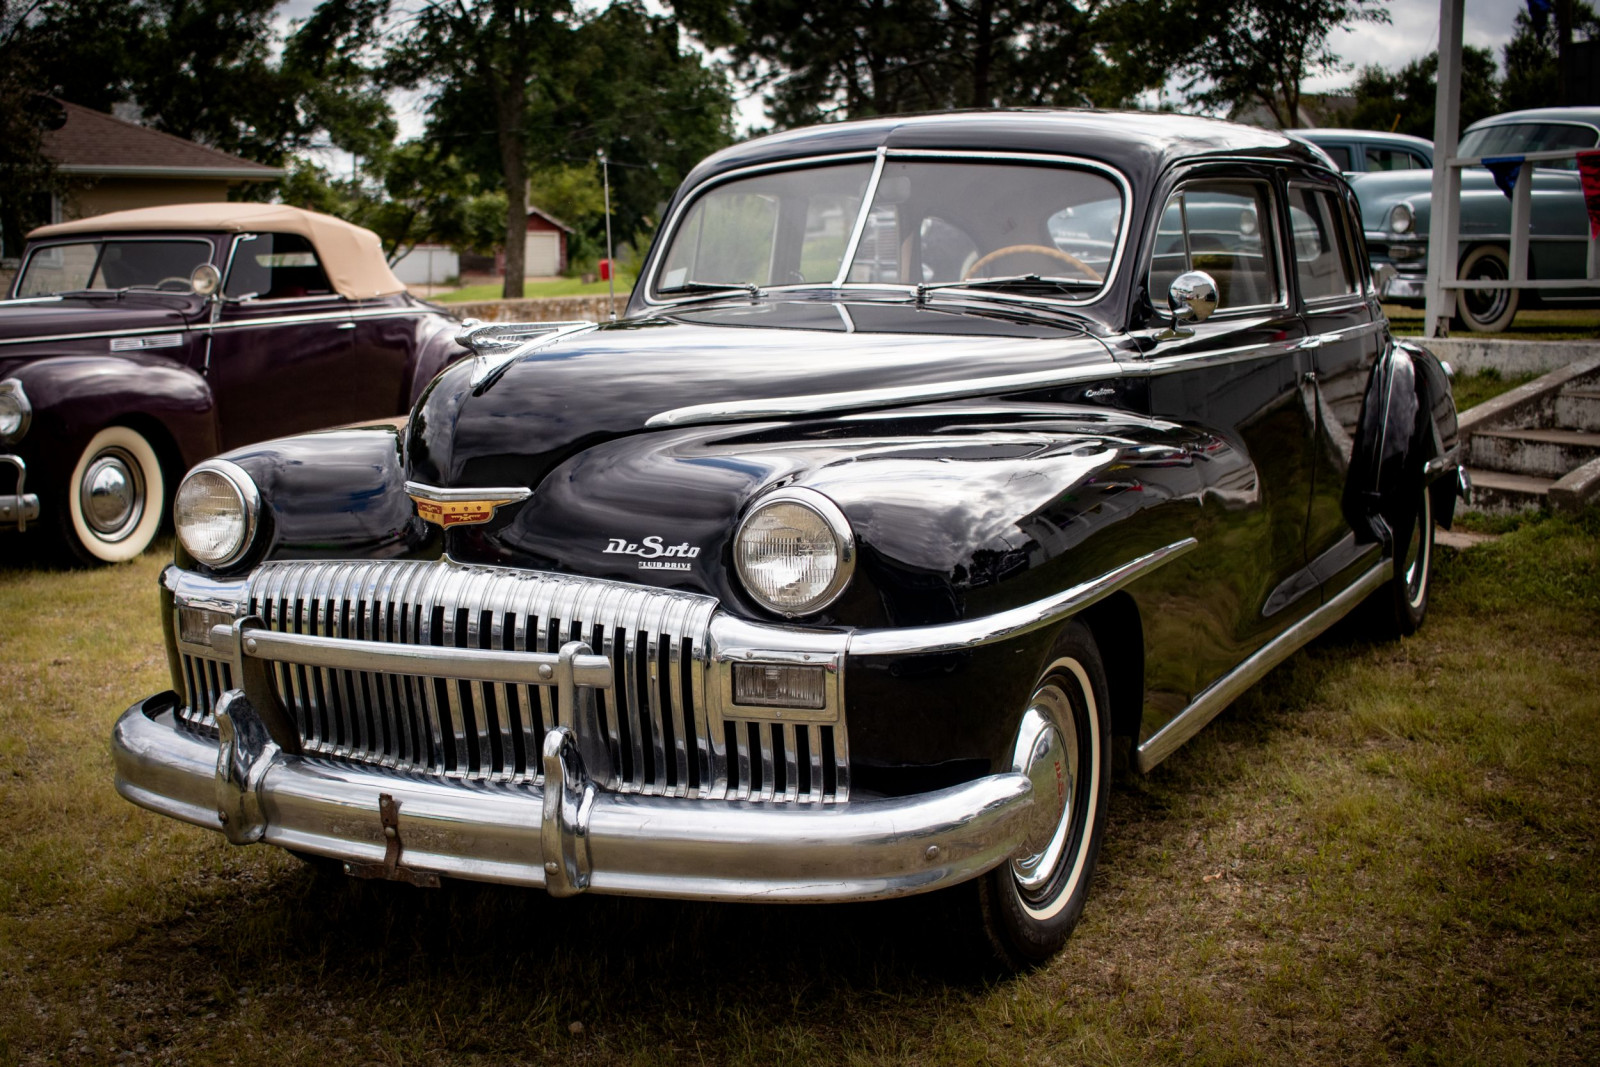 1948 DeSoto Custom 4dr Sedan - Image 1